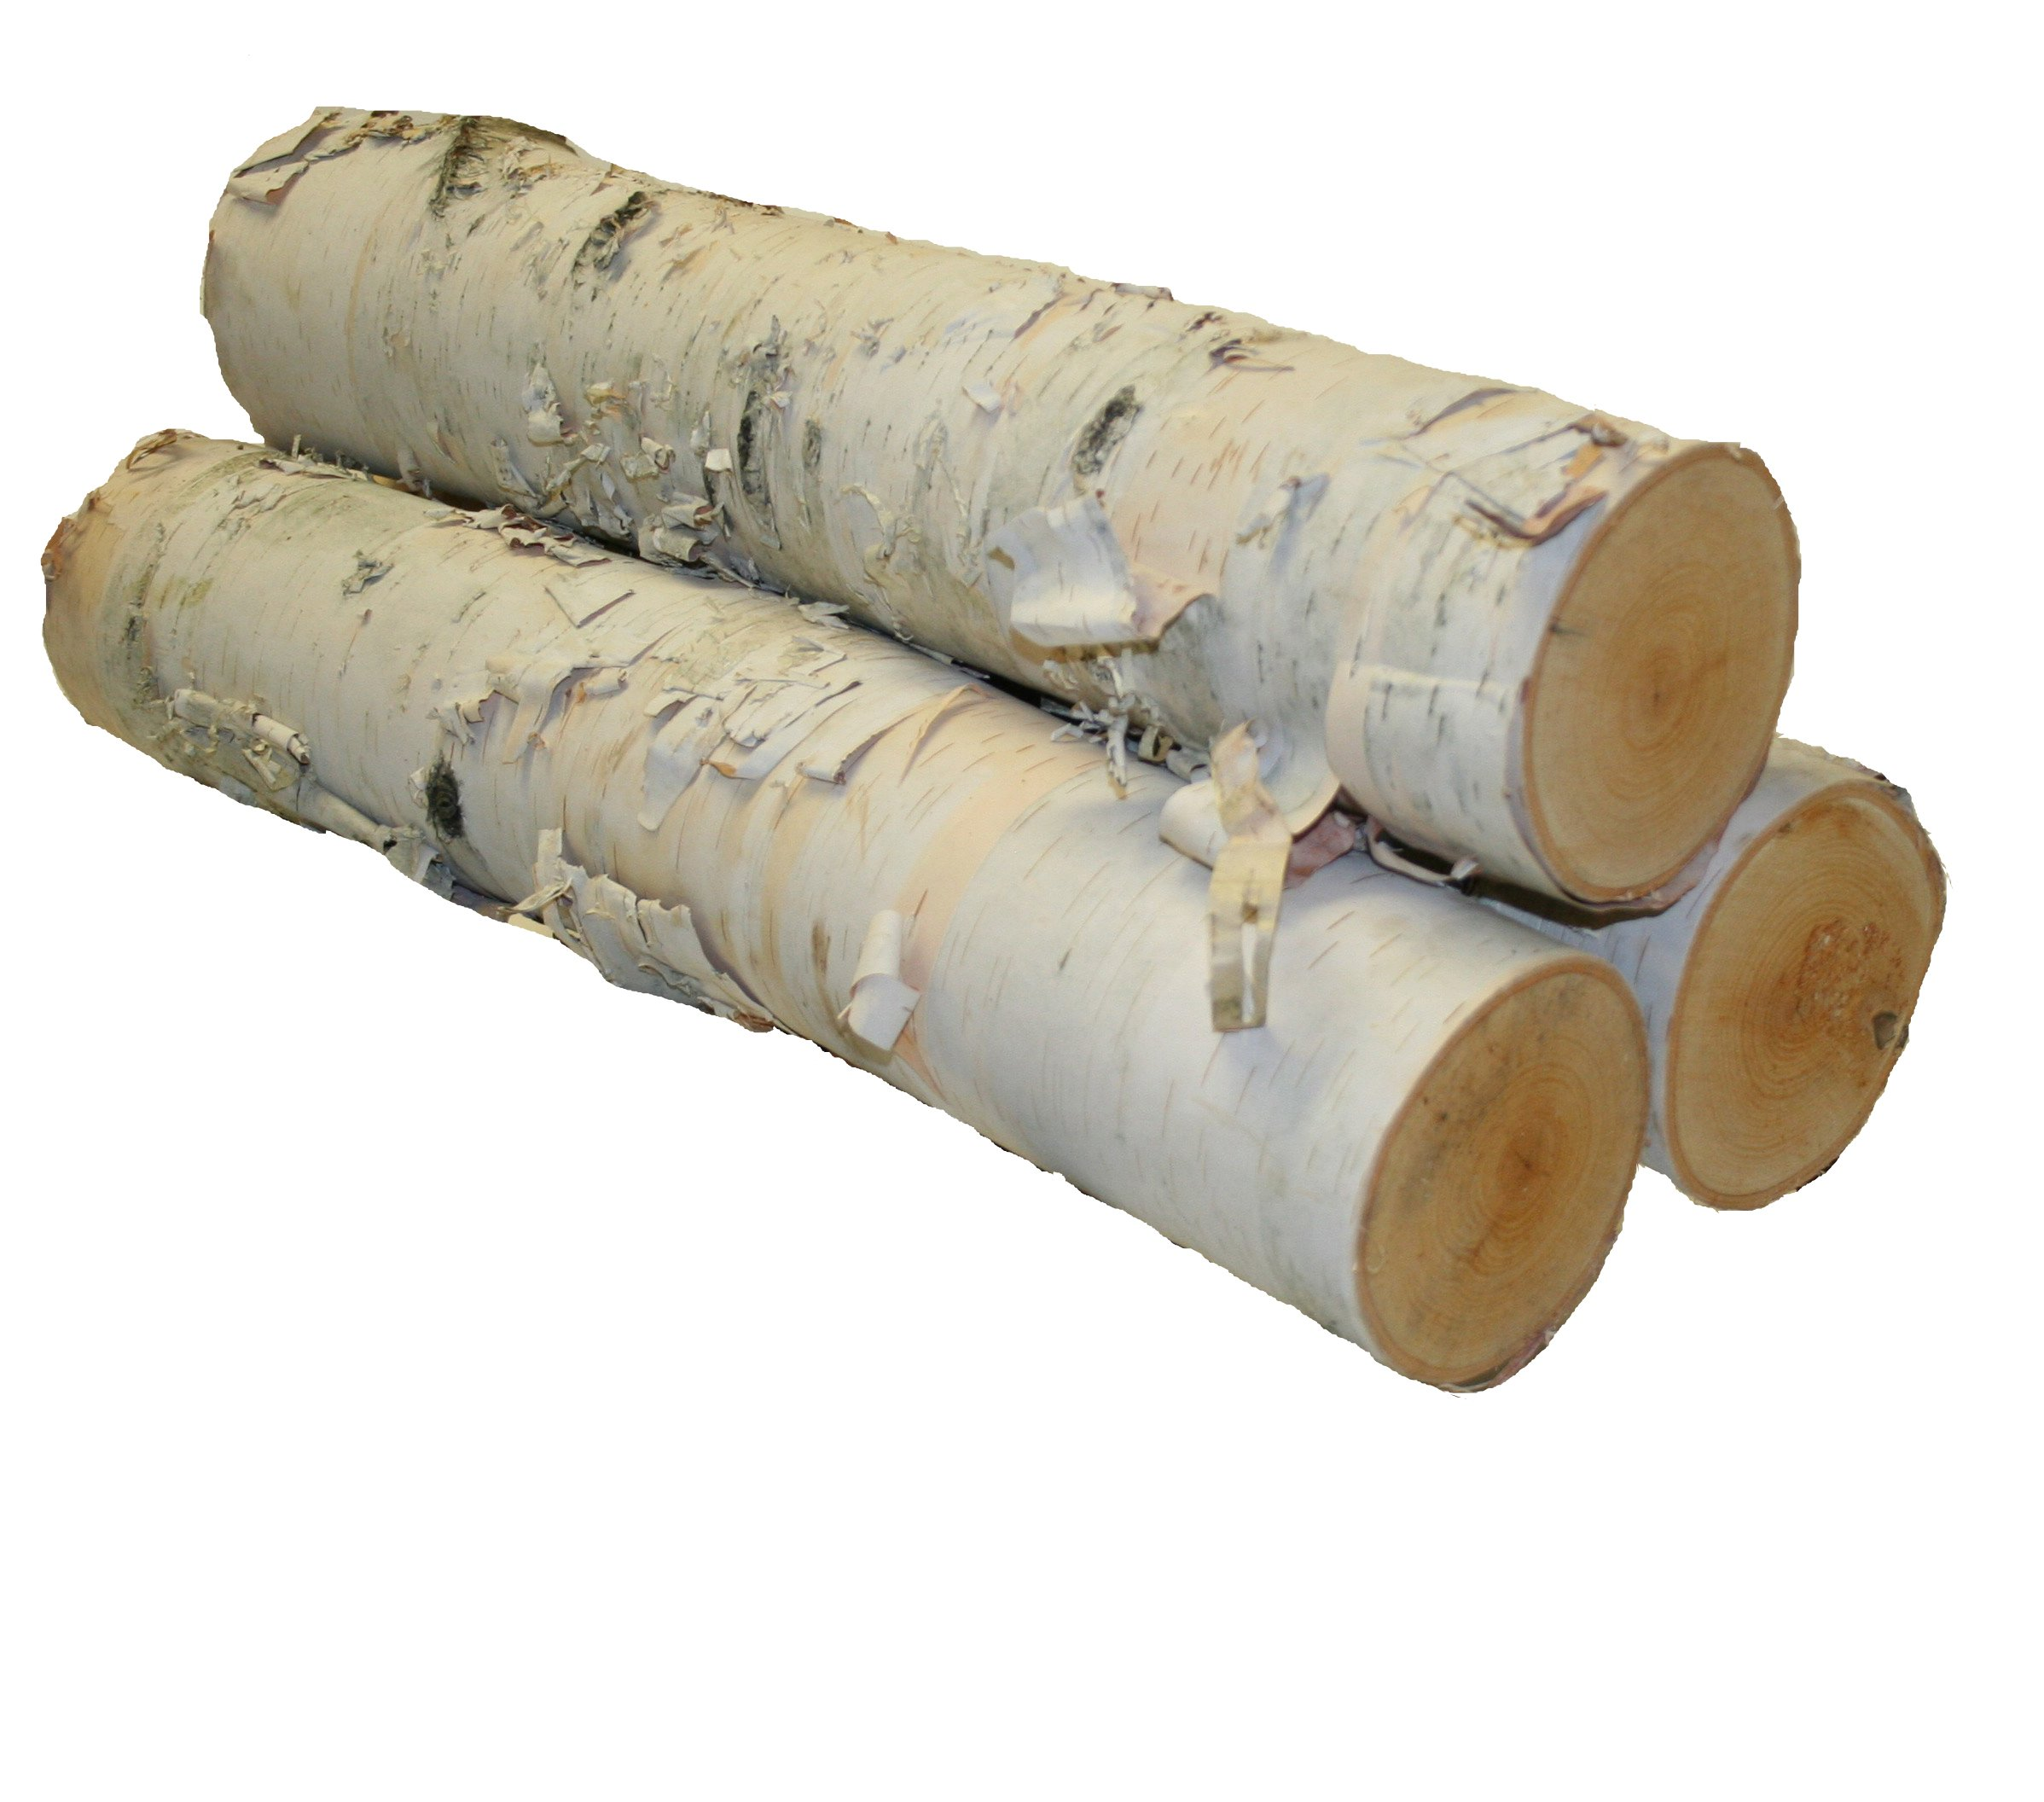 Wilson Enterprises Large Logs, Set of 3, White Birch by Wilson Enterprises